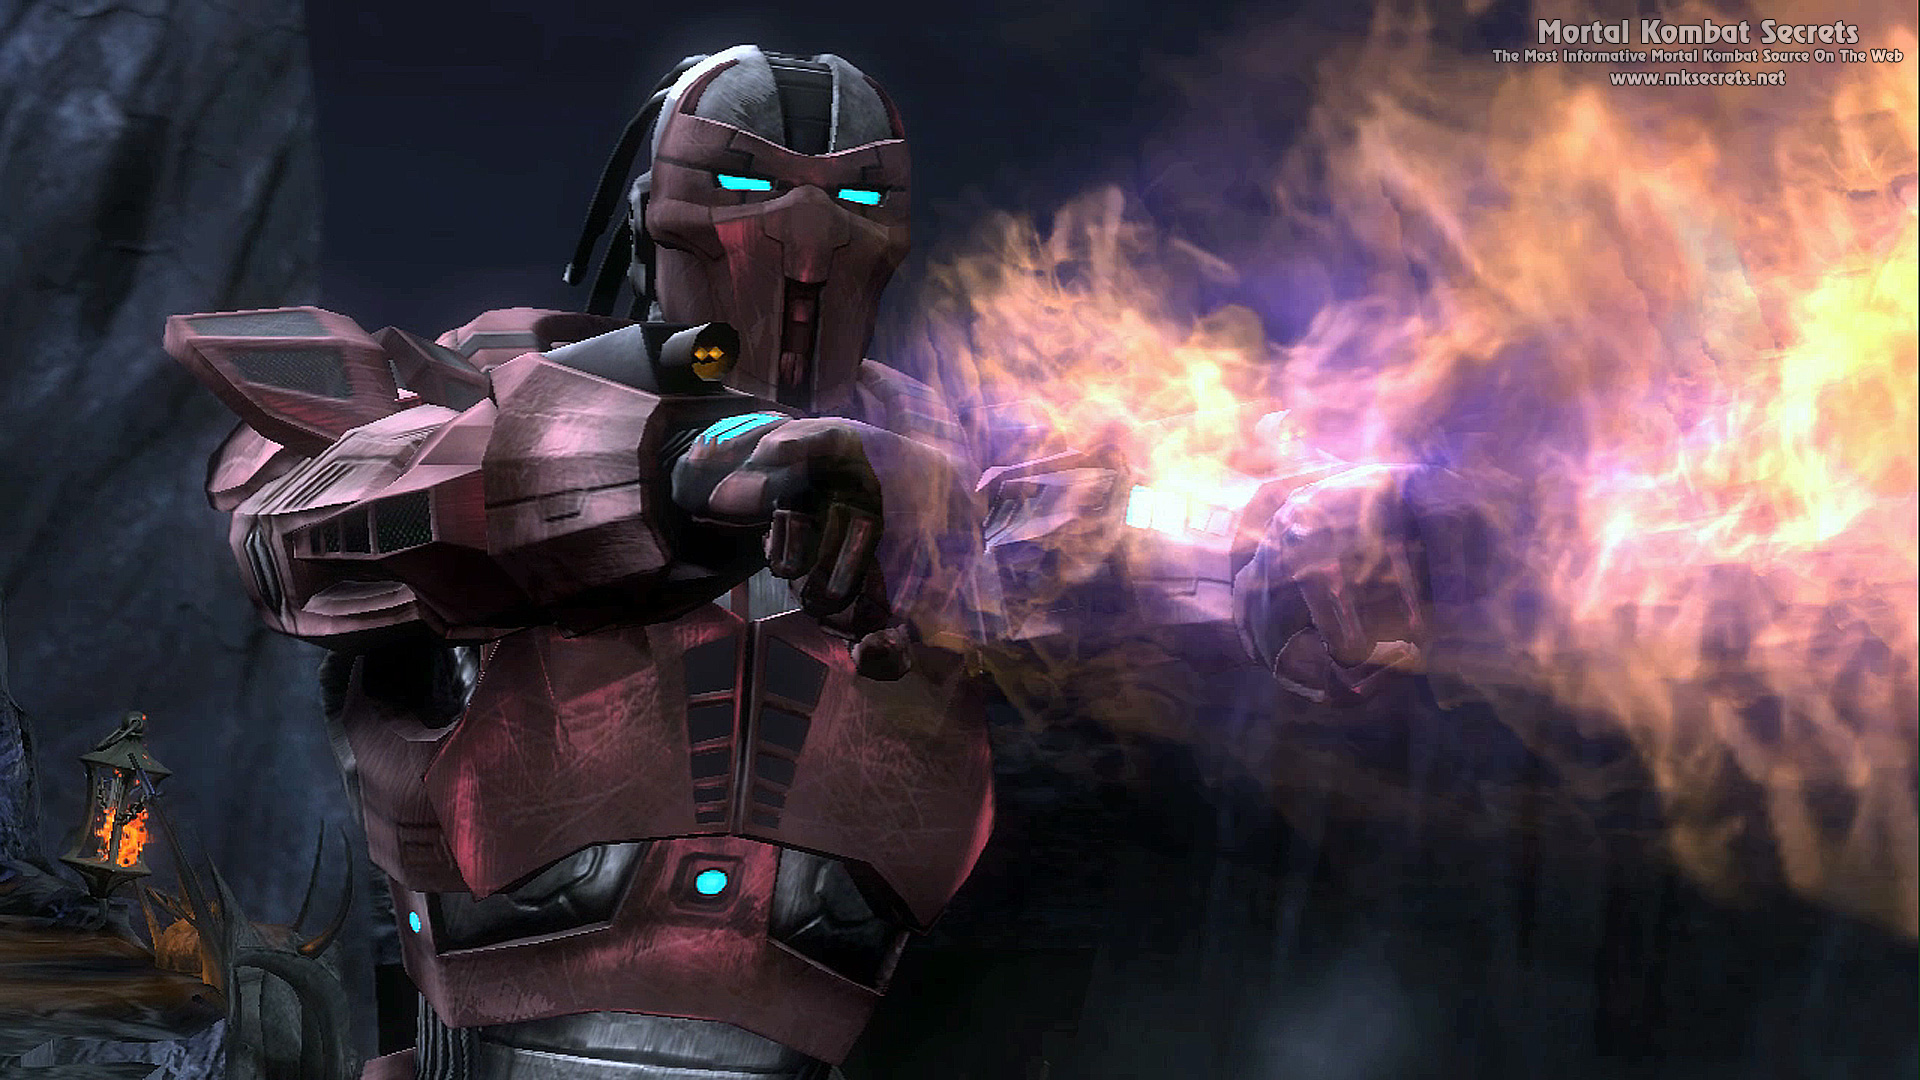 Mortal Kombat 9 Sektor wallpaper   168640 1920x1080